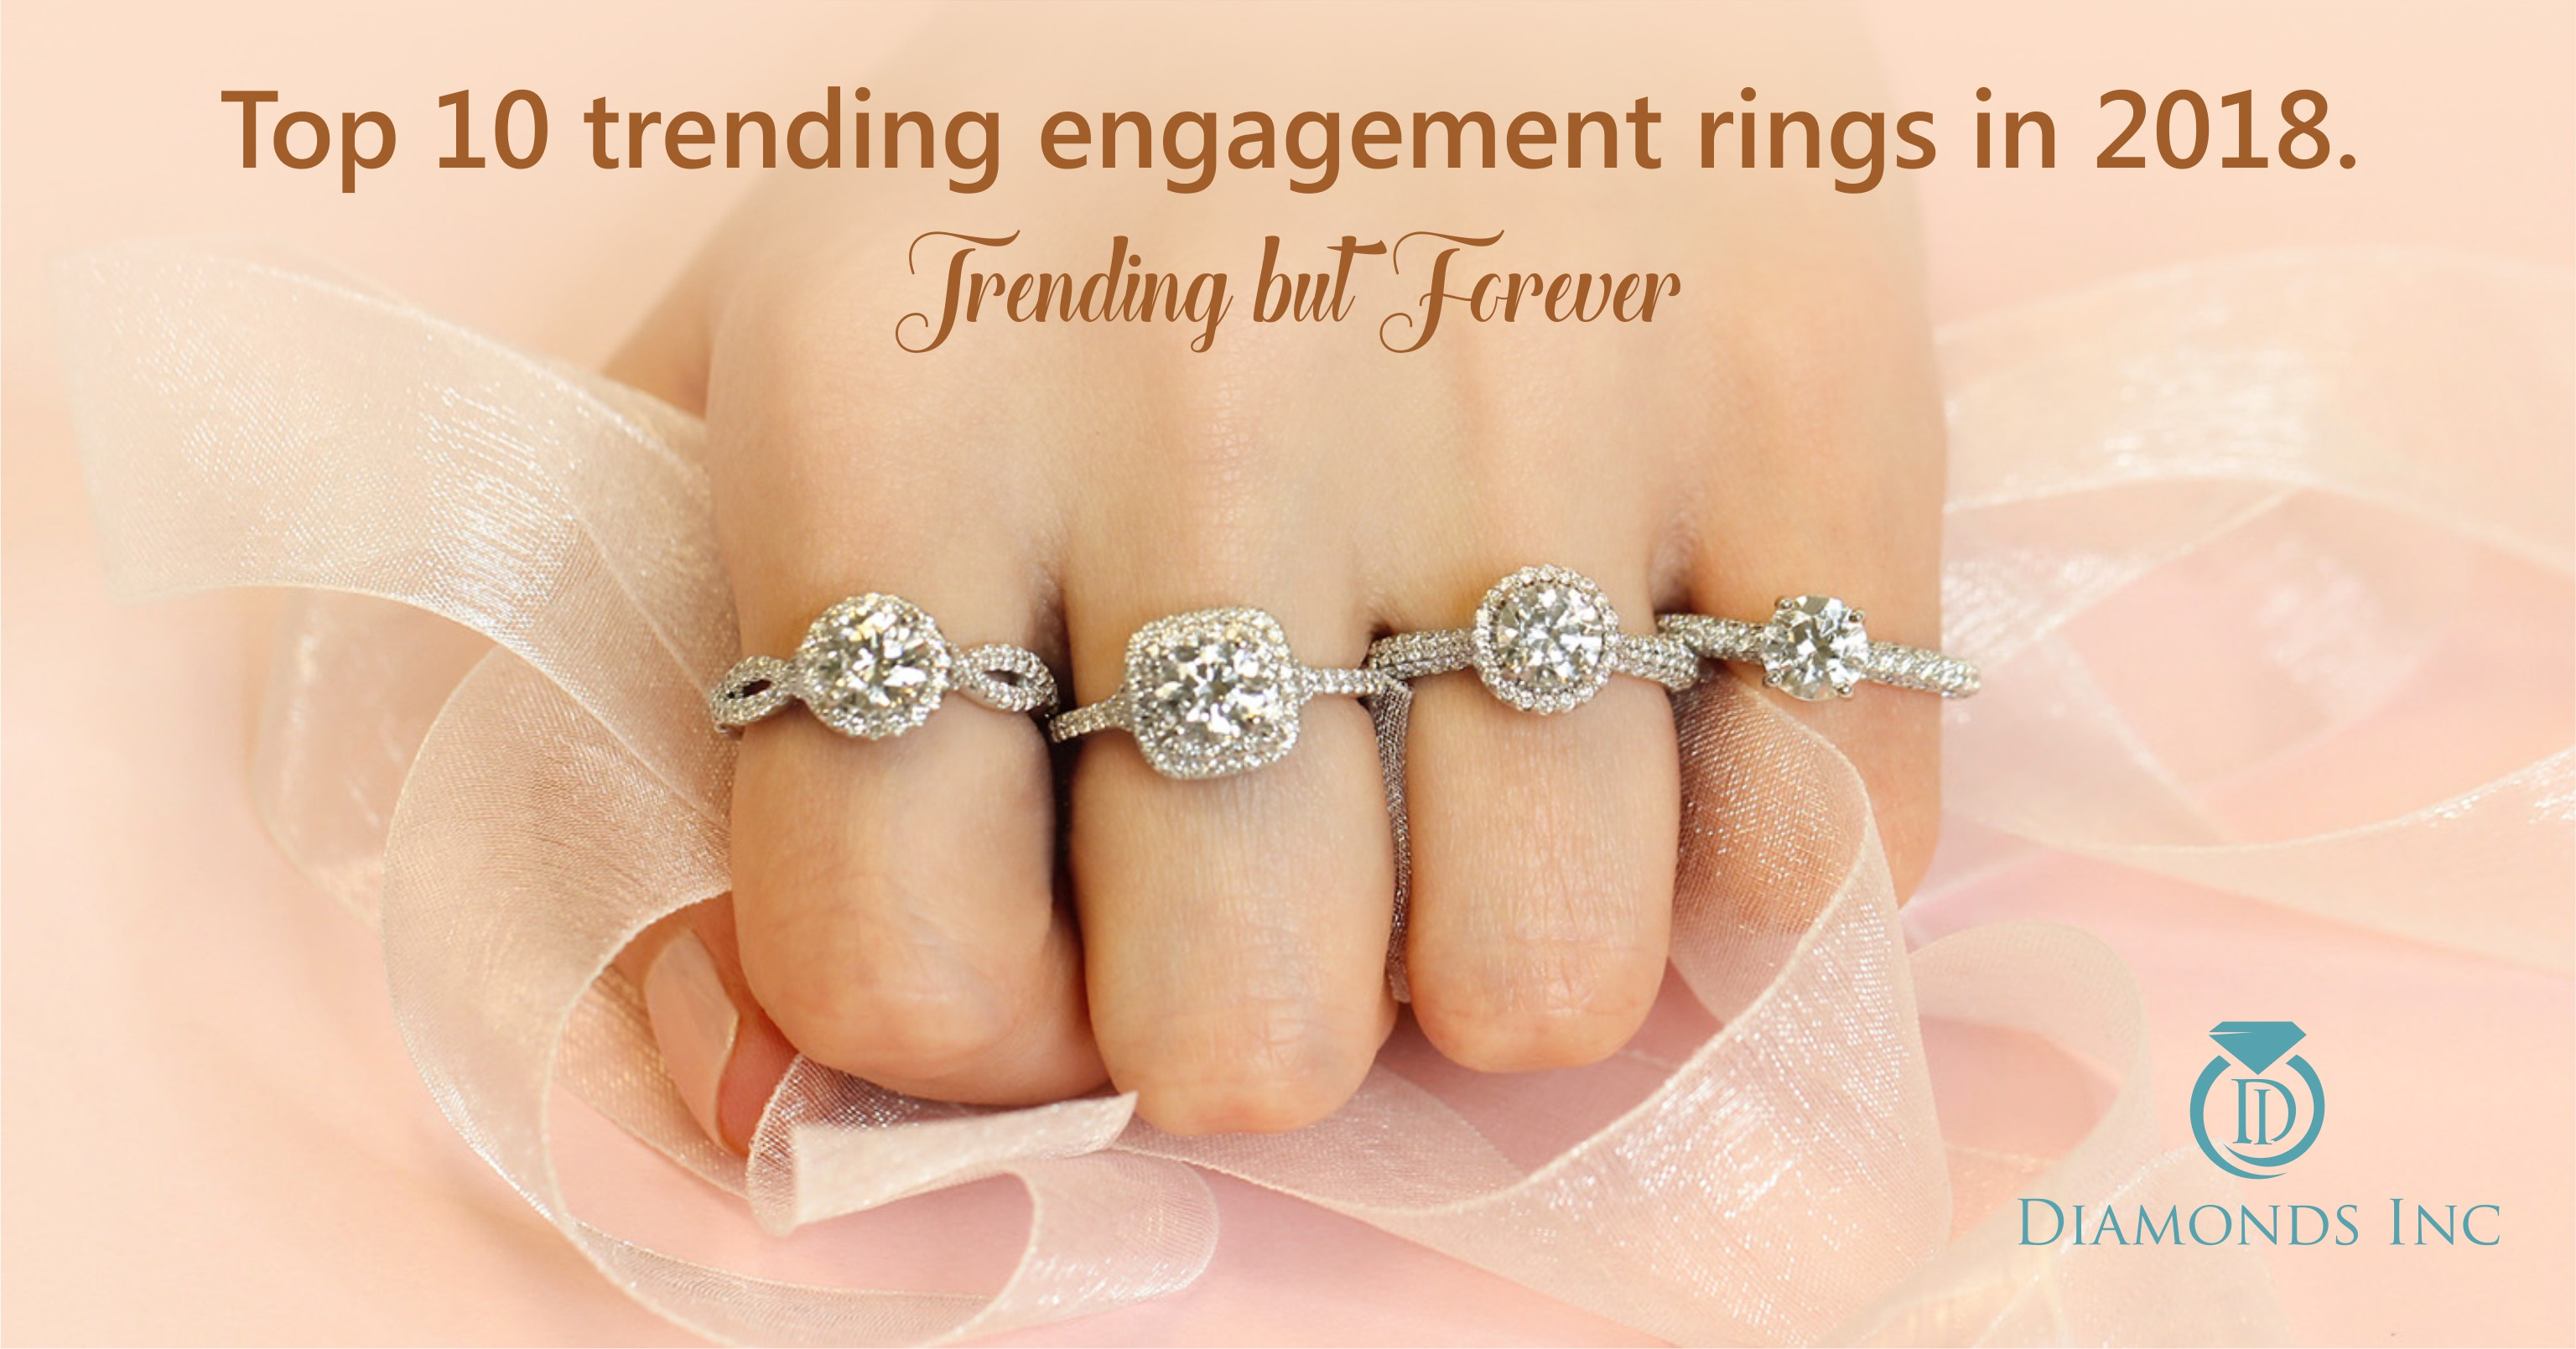 diamond celebrity ring getty weddings trends and tips unique jennifer in finnigan main bands on glamorous affordable com engagement glamour buying rings